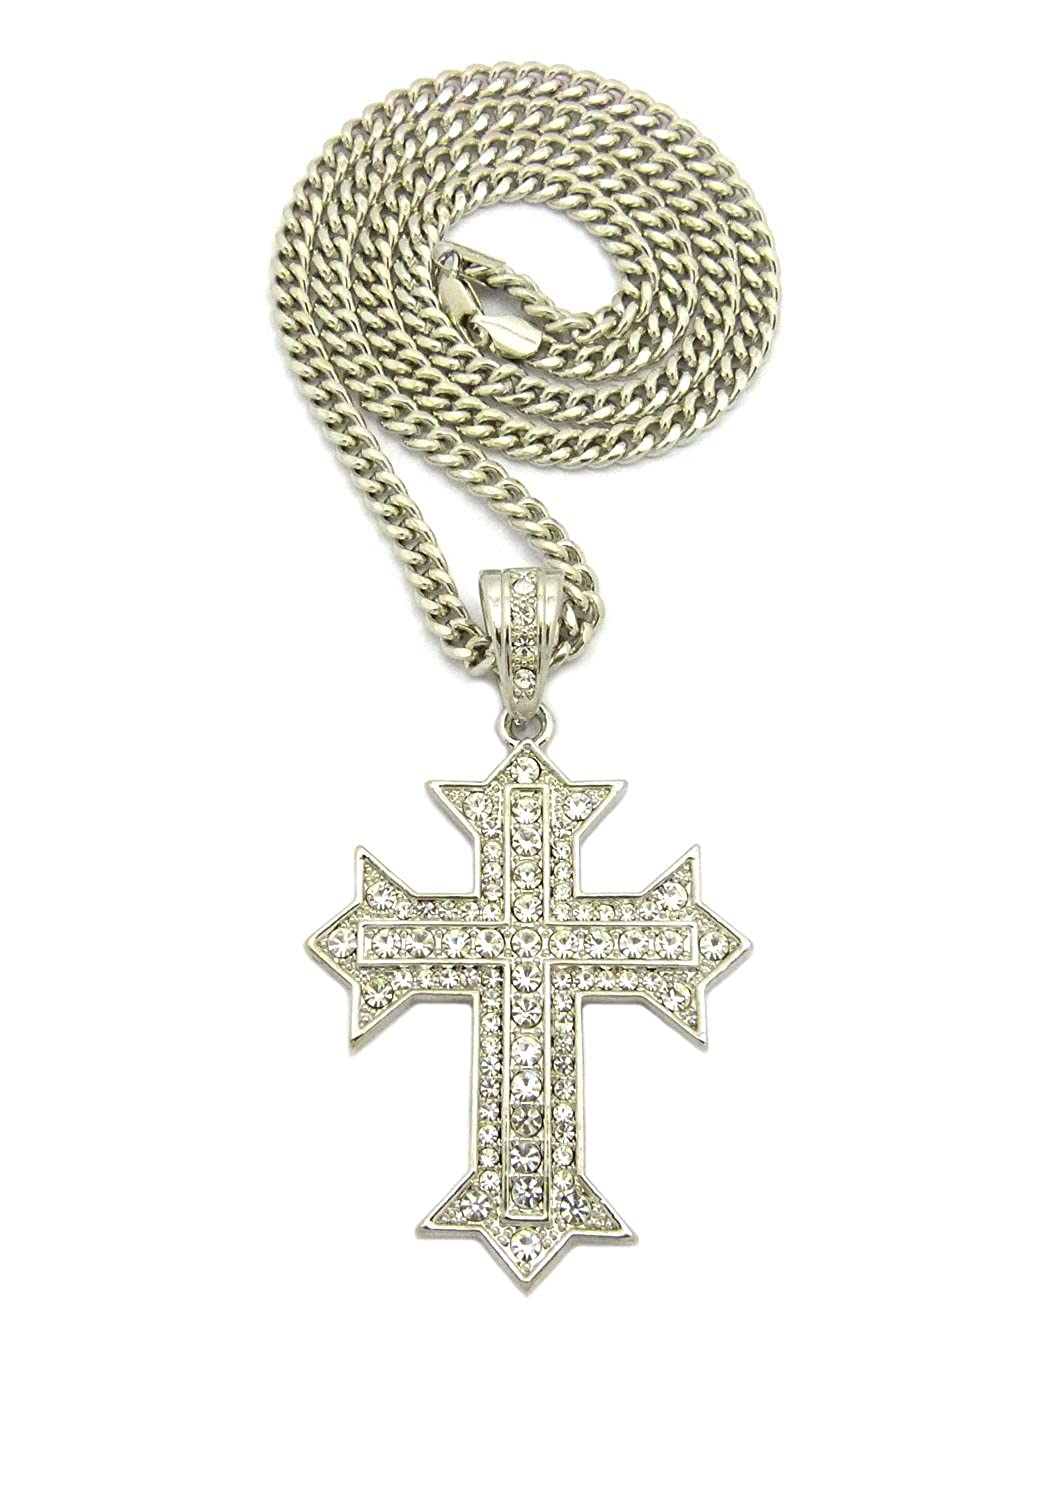 Fashion 21 Hip Hip Iced Out Cross Pendant 6mm 36 Cuban Chain Necklace in Silver Color Plated